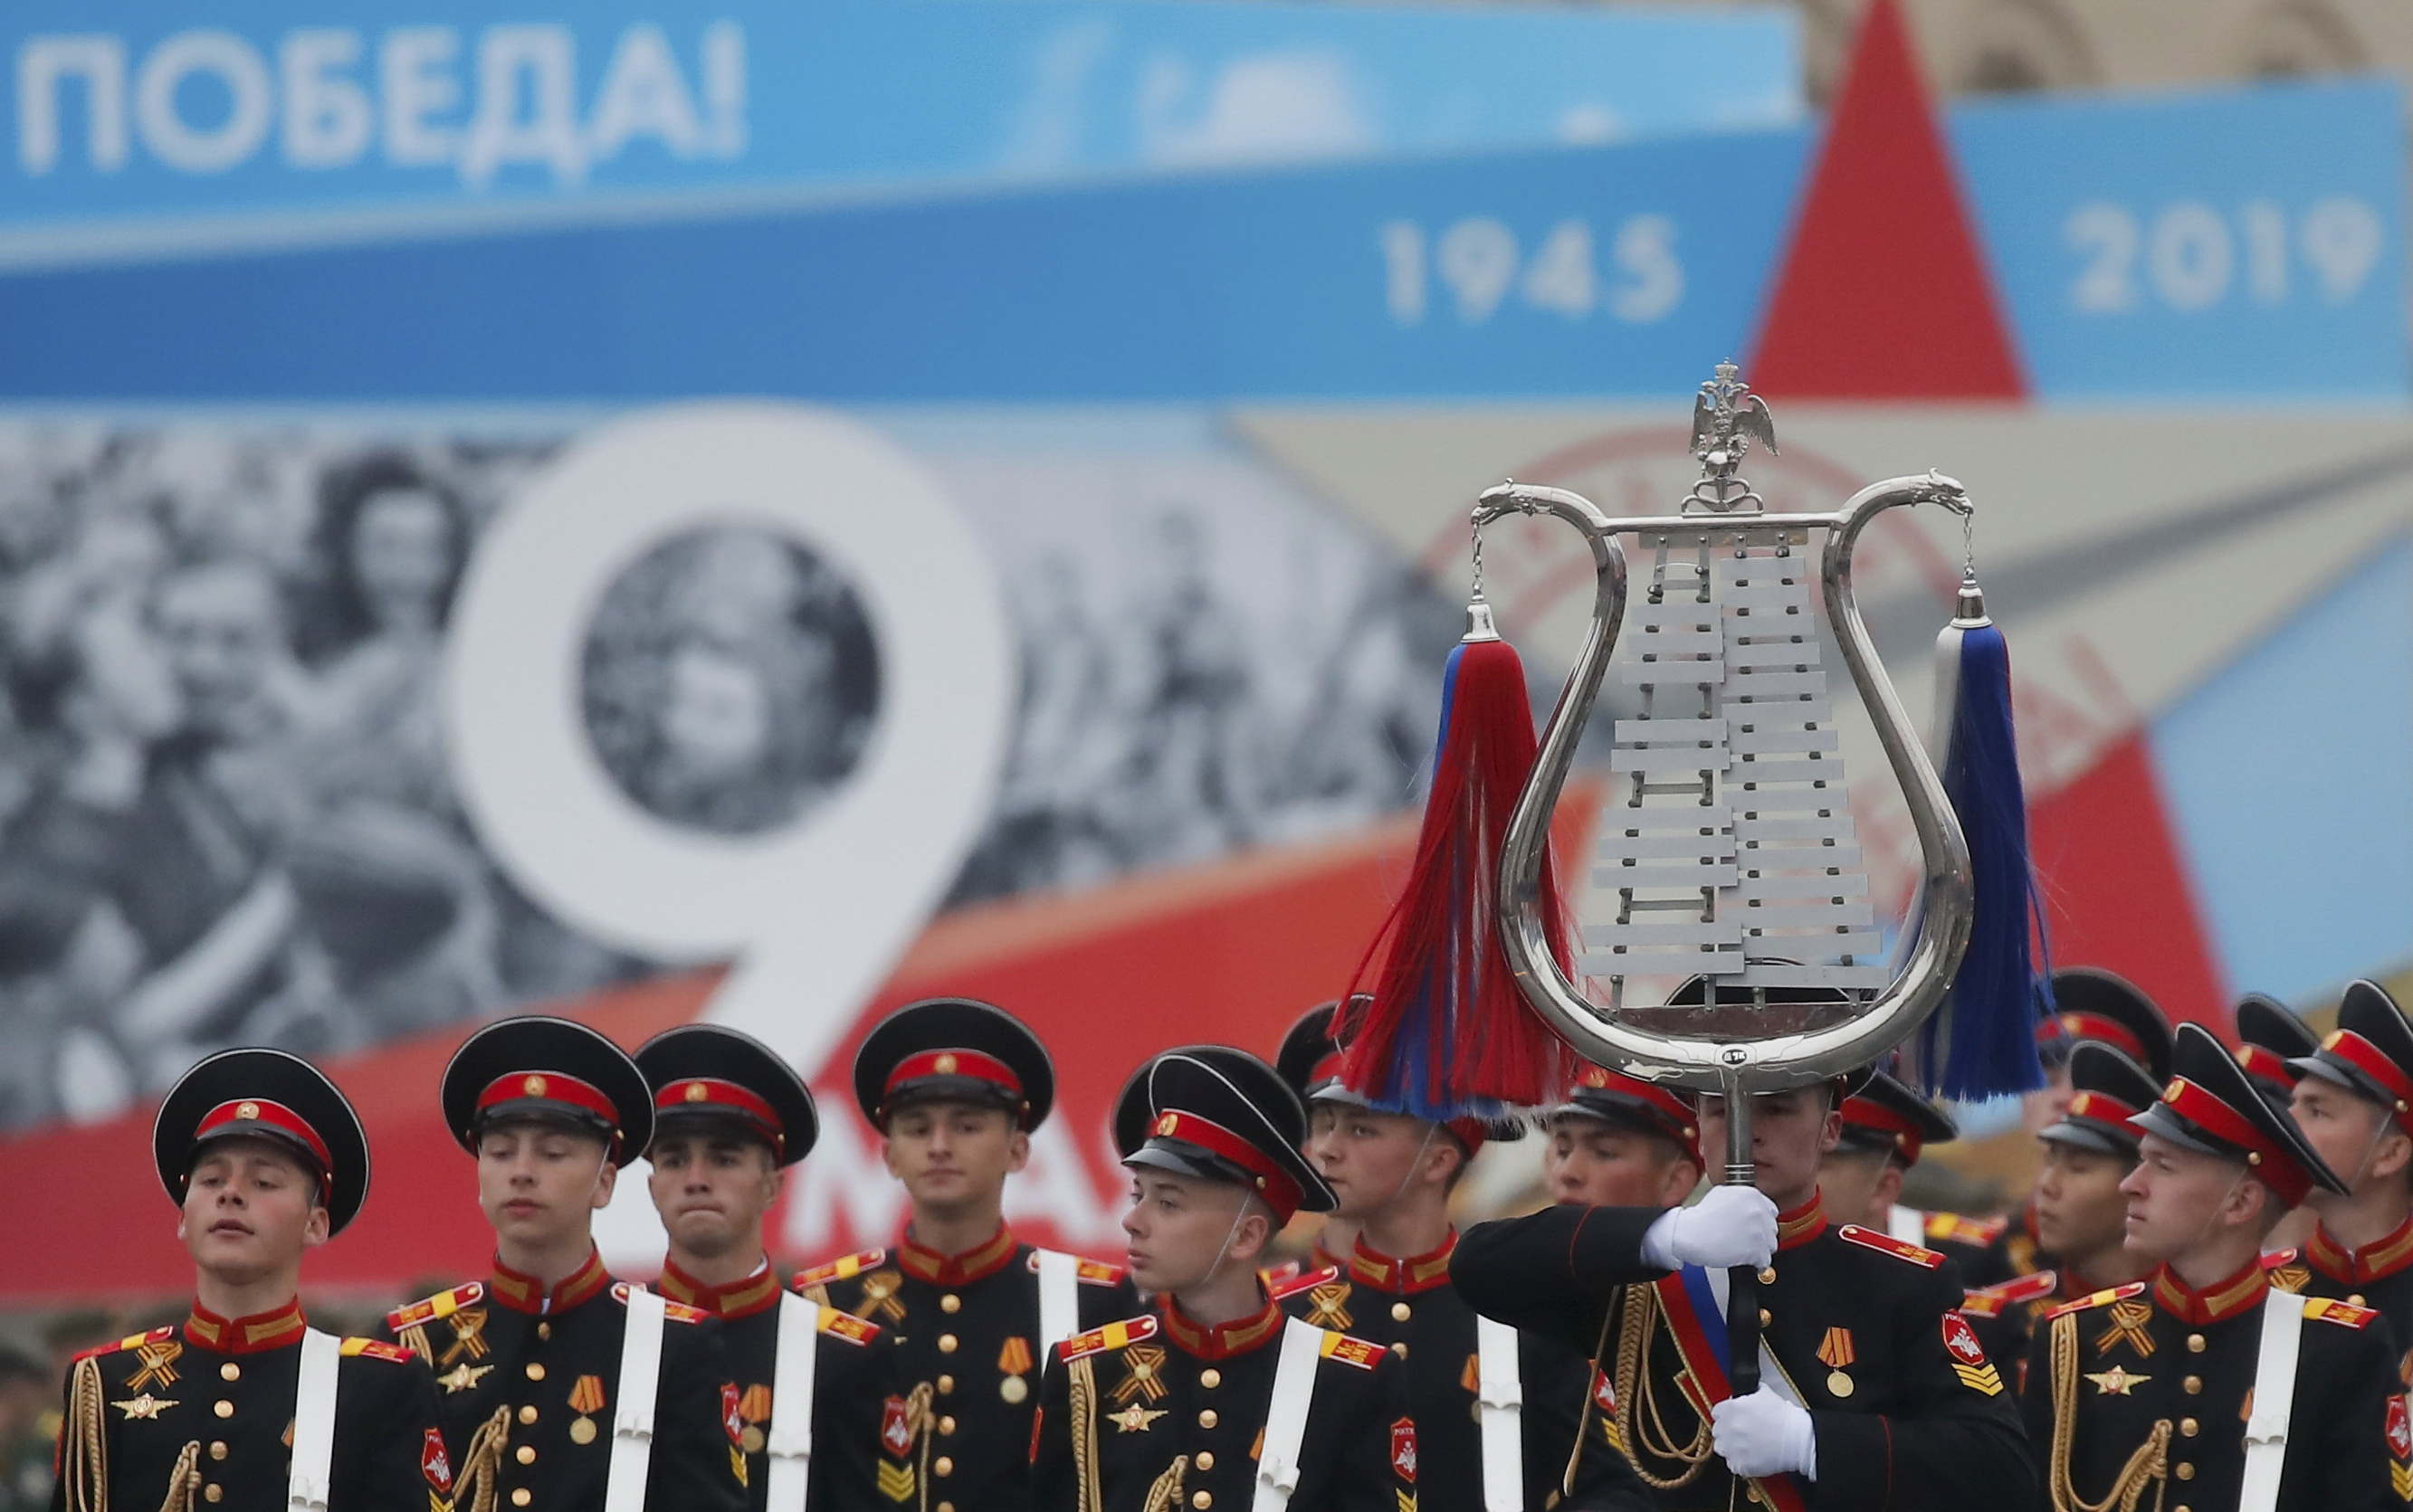 2019-05-09T090848Z_126717808_UP1EF590PEO56_RTRMADP_3_WW2-ANNIVERSARY-RUSSIA-PARADE